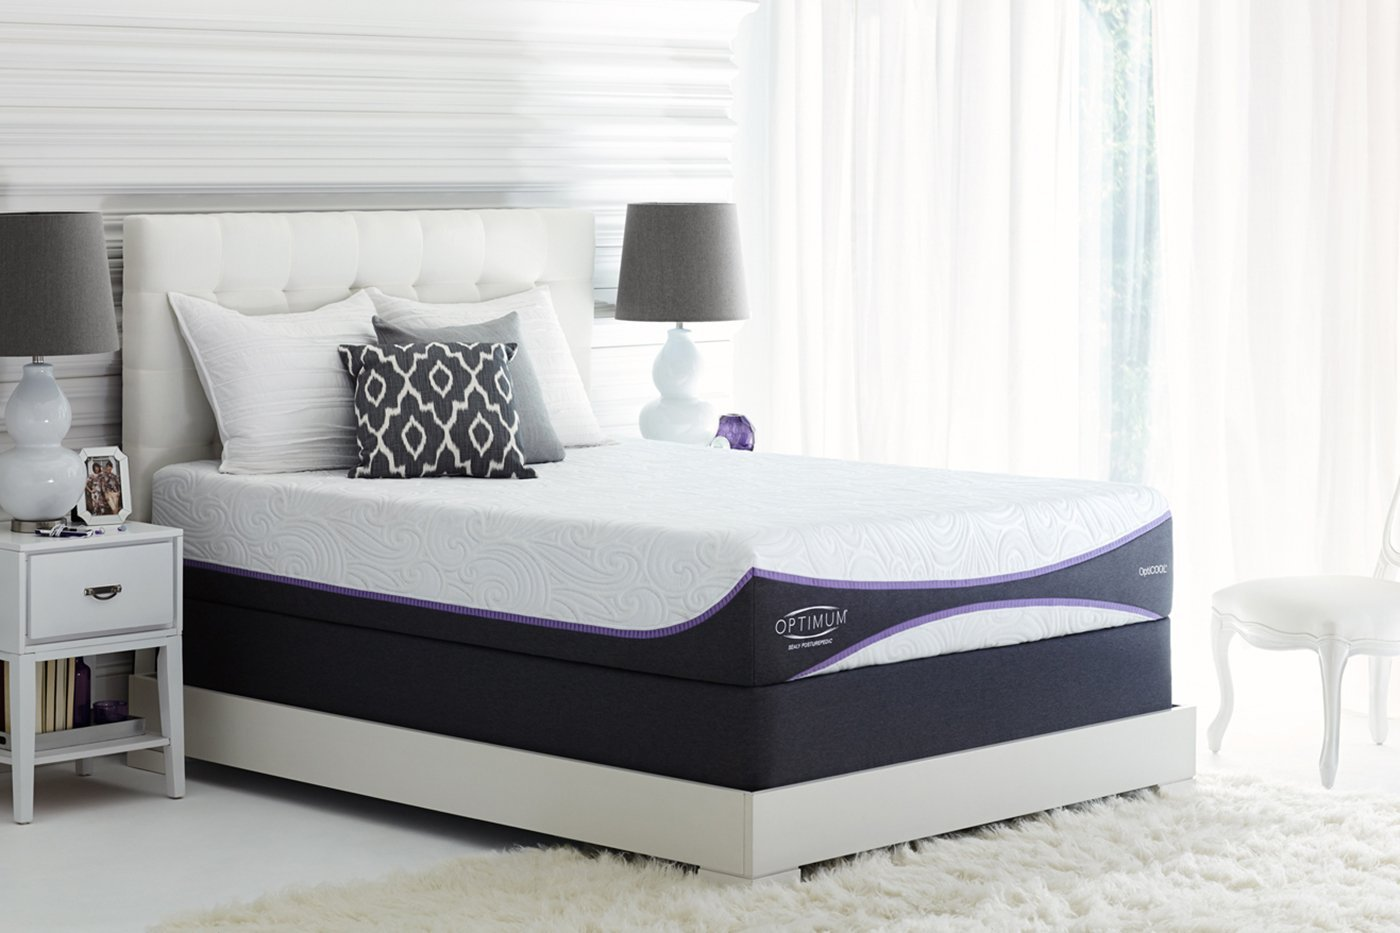 elegant mattresses fortable photos comfortable mattress comforter of new most top